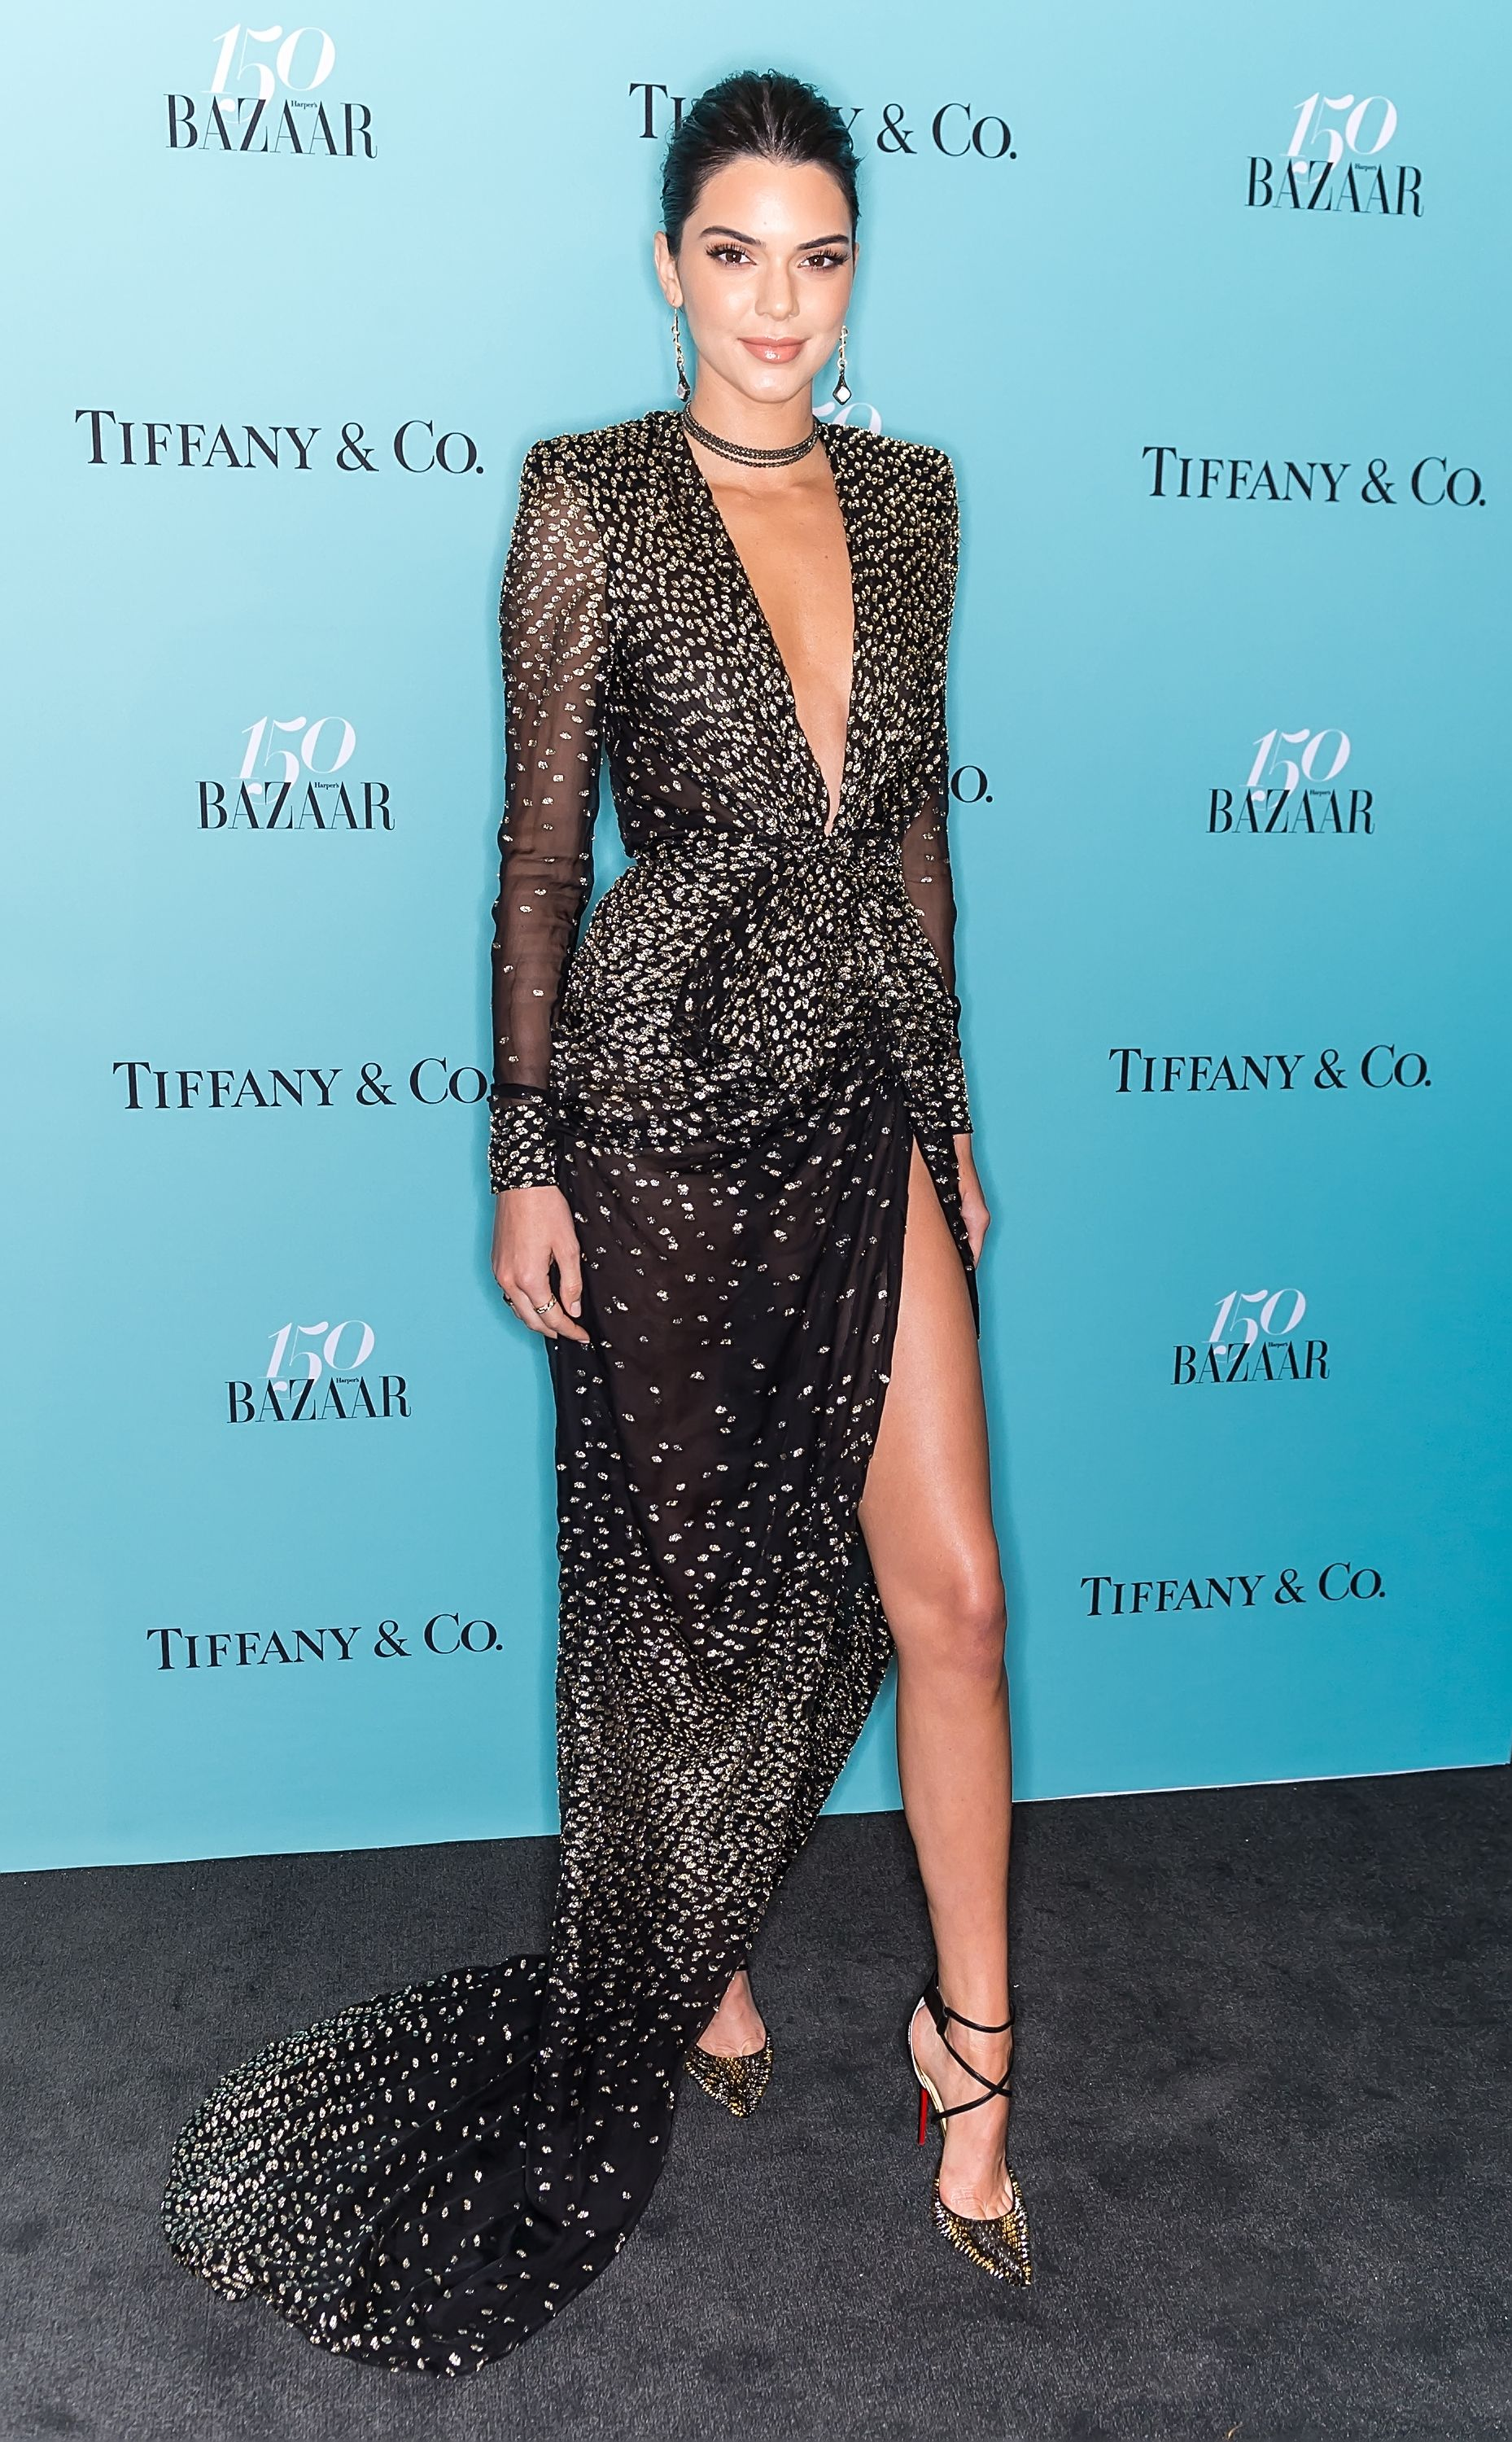 Kendall Jenner in Gold Sheer Dress at Chopard Cannes Party - Kendall ...